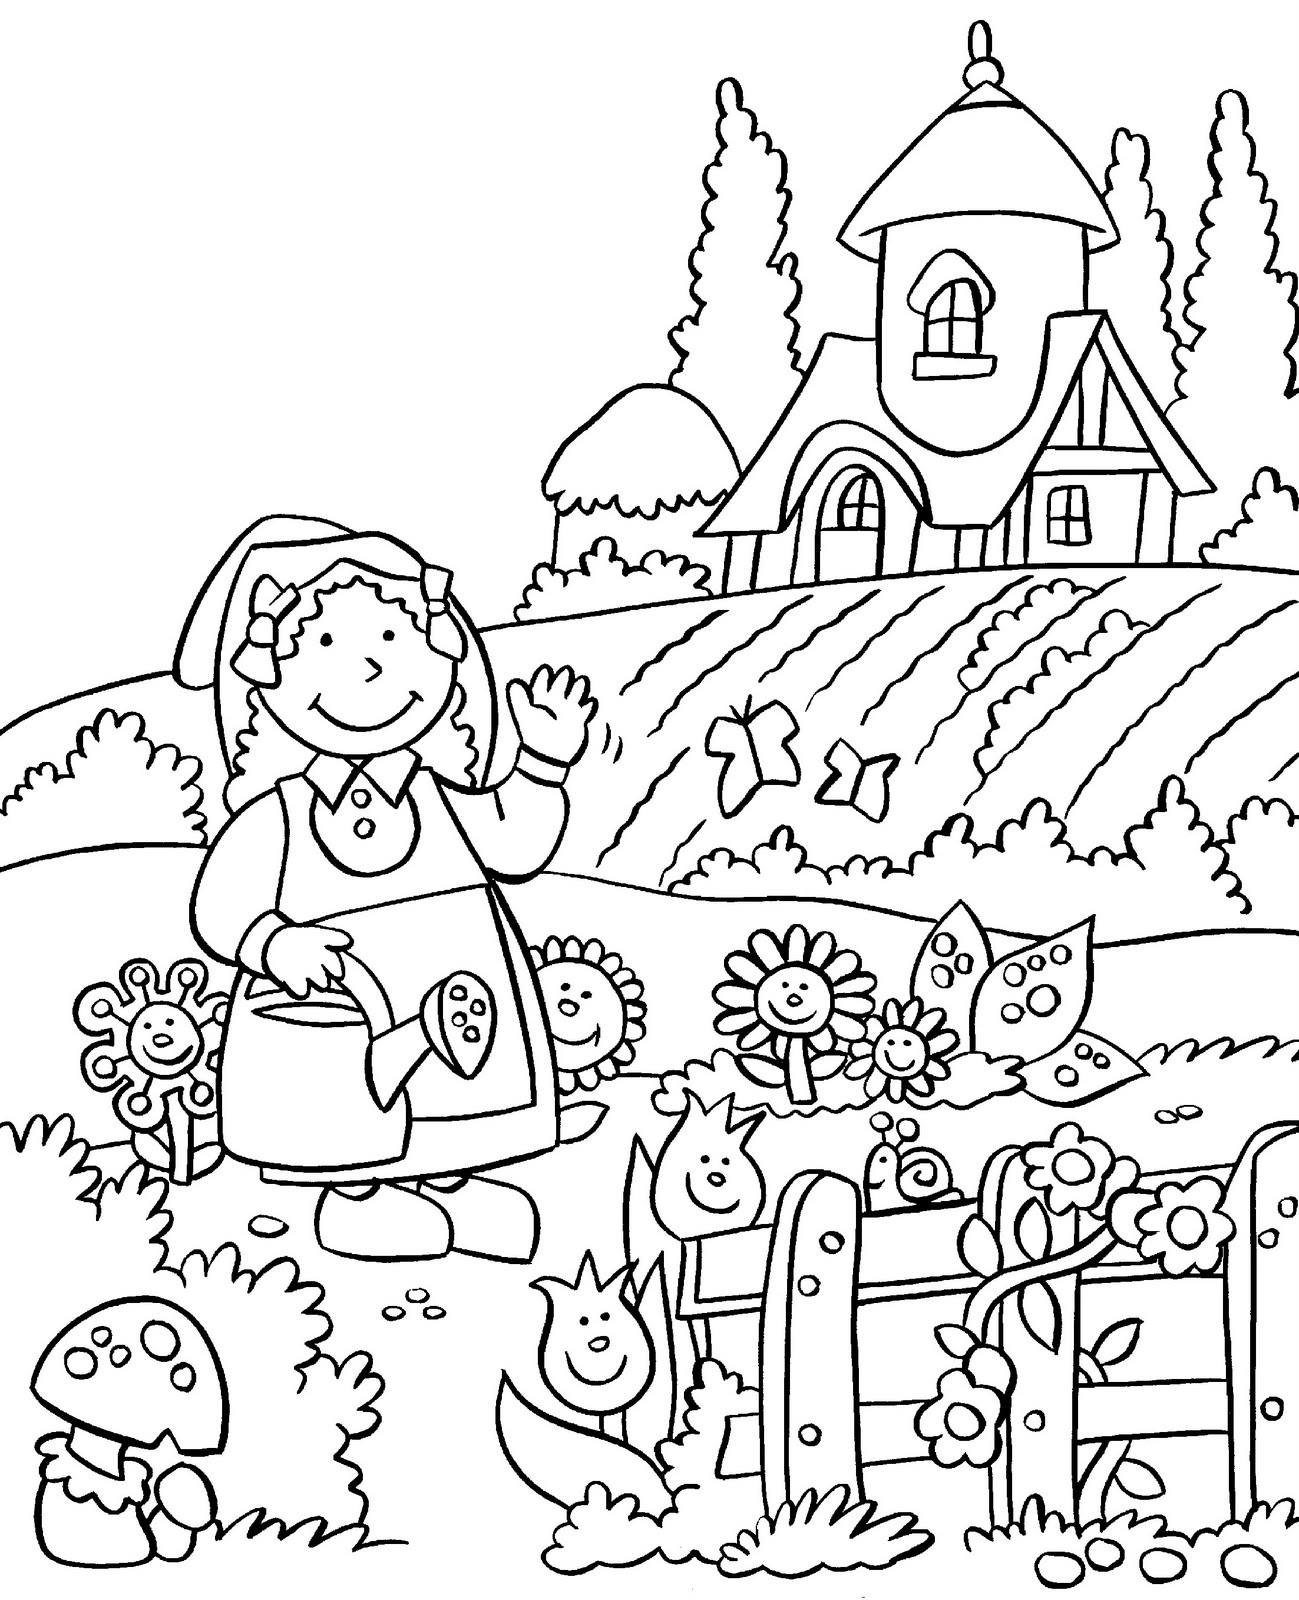 garden pictures to colour gardening coloring pages to download and print for free to garden pictures colour